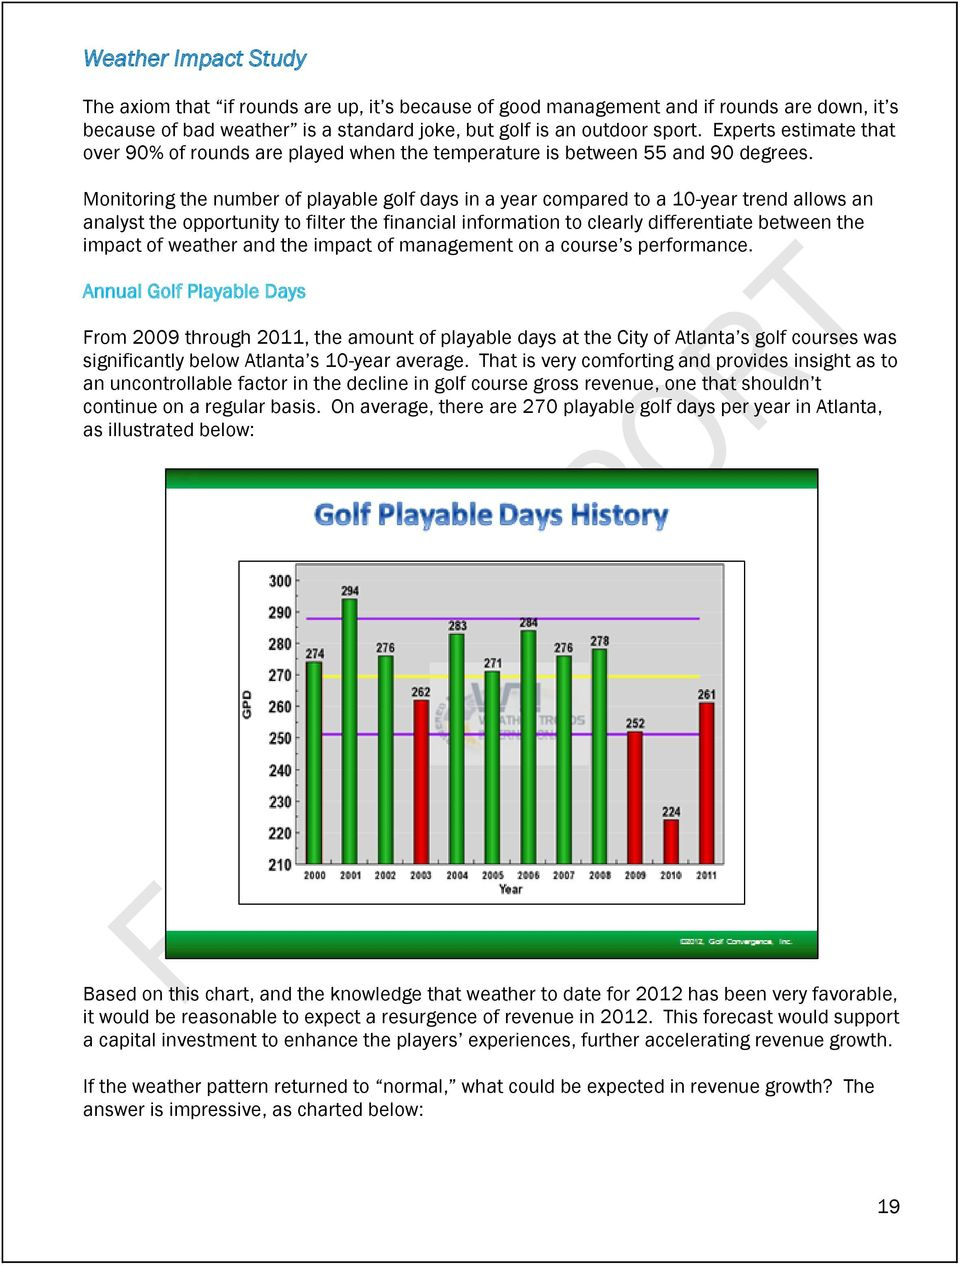 Monitoring the number of playable golf days in a year compared to a 10-year trend allows an analyst the opportunity to filter the financial information to clearly differentiate between the impact of